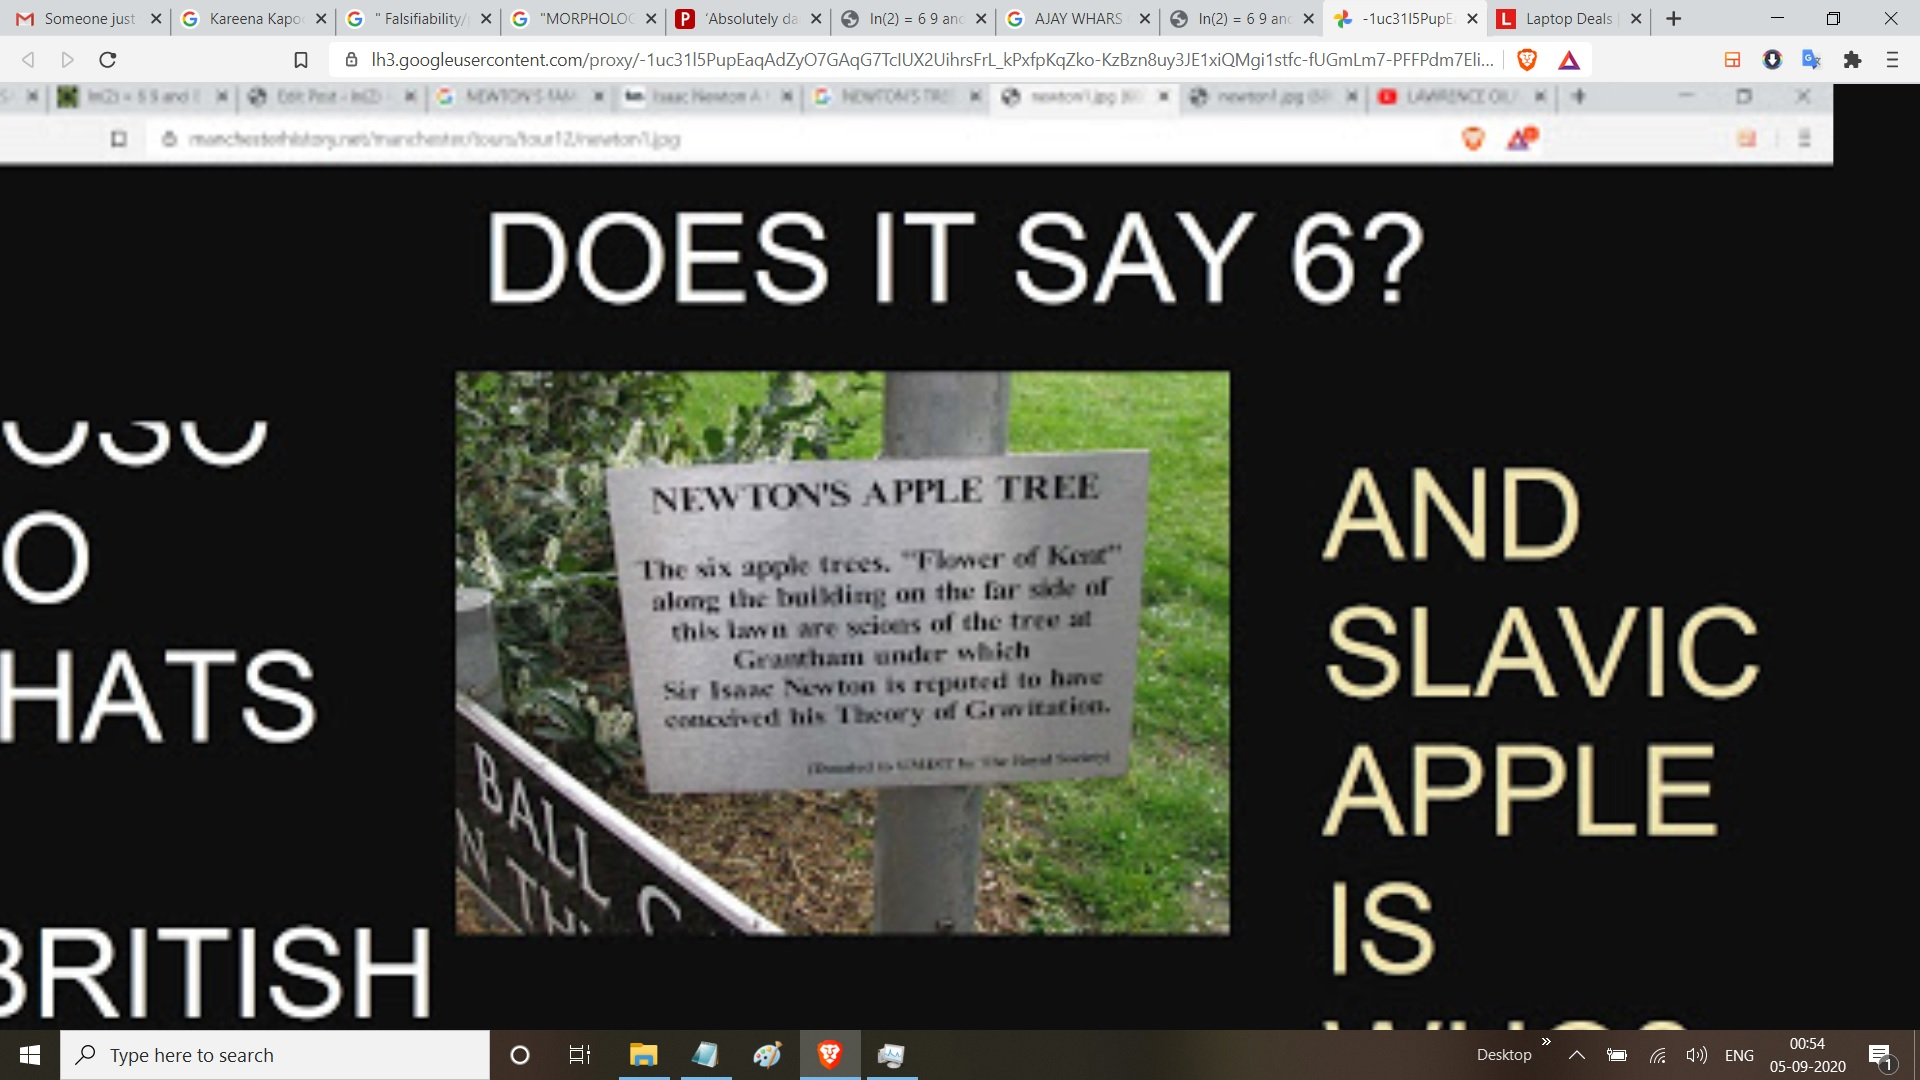 NEWTON;SAPPLE TREE 6